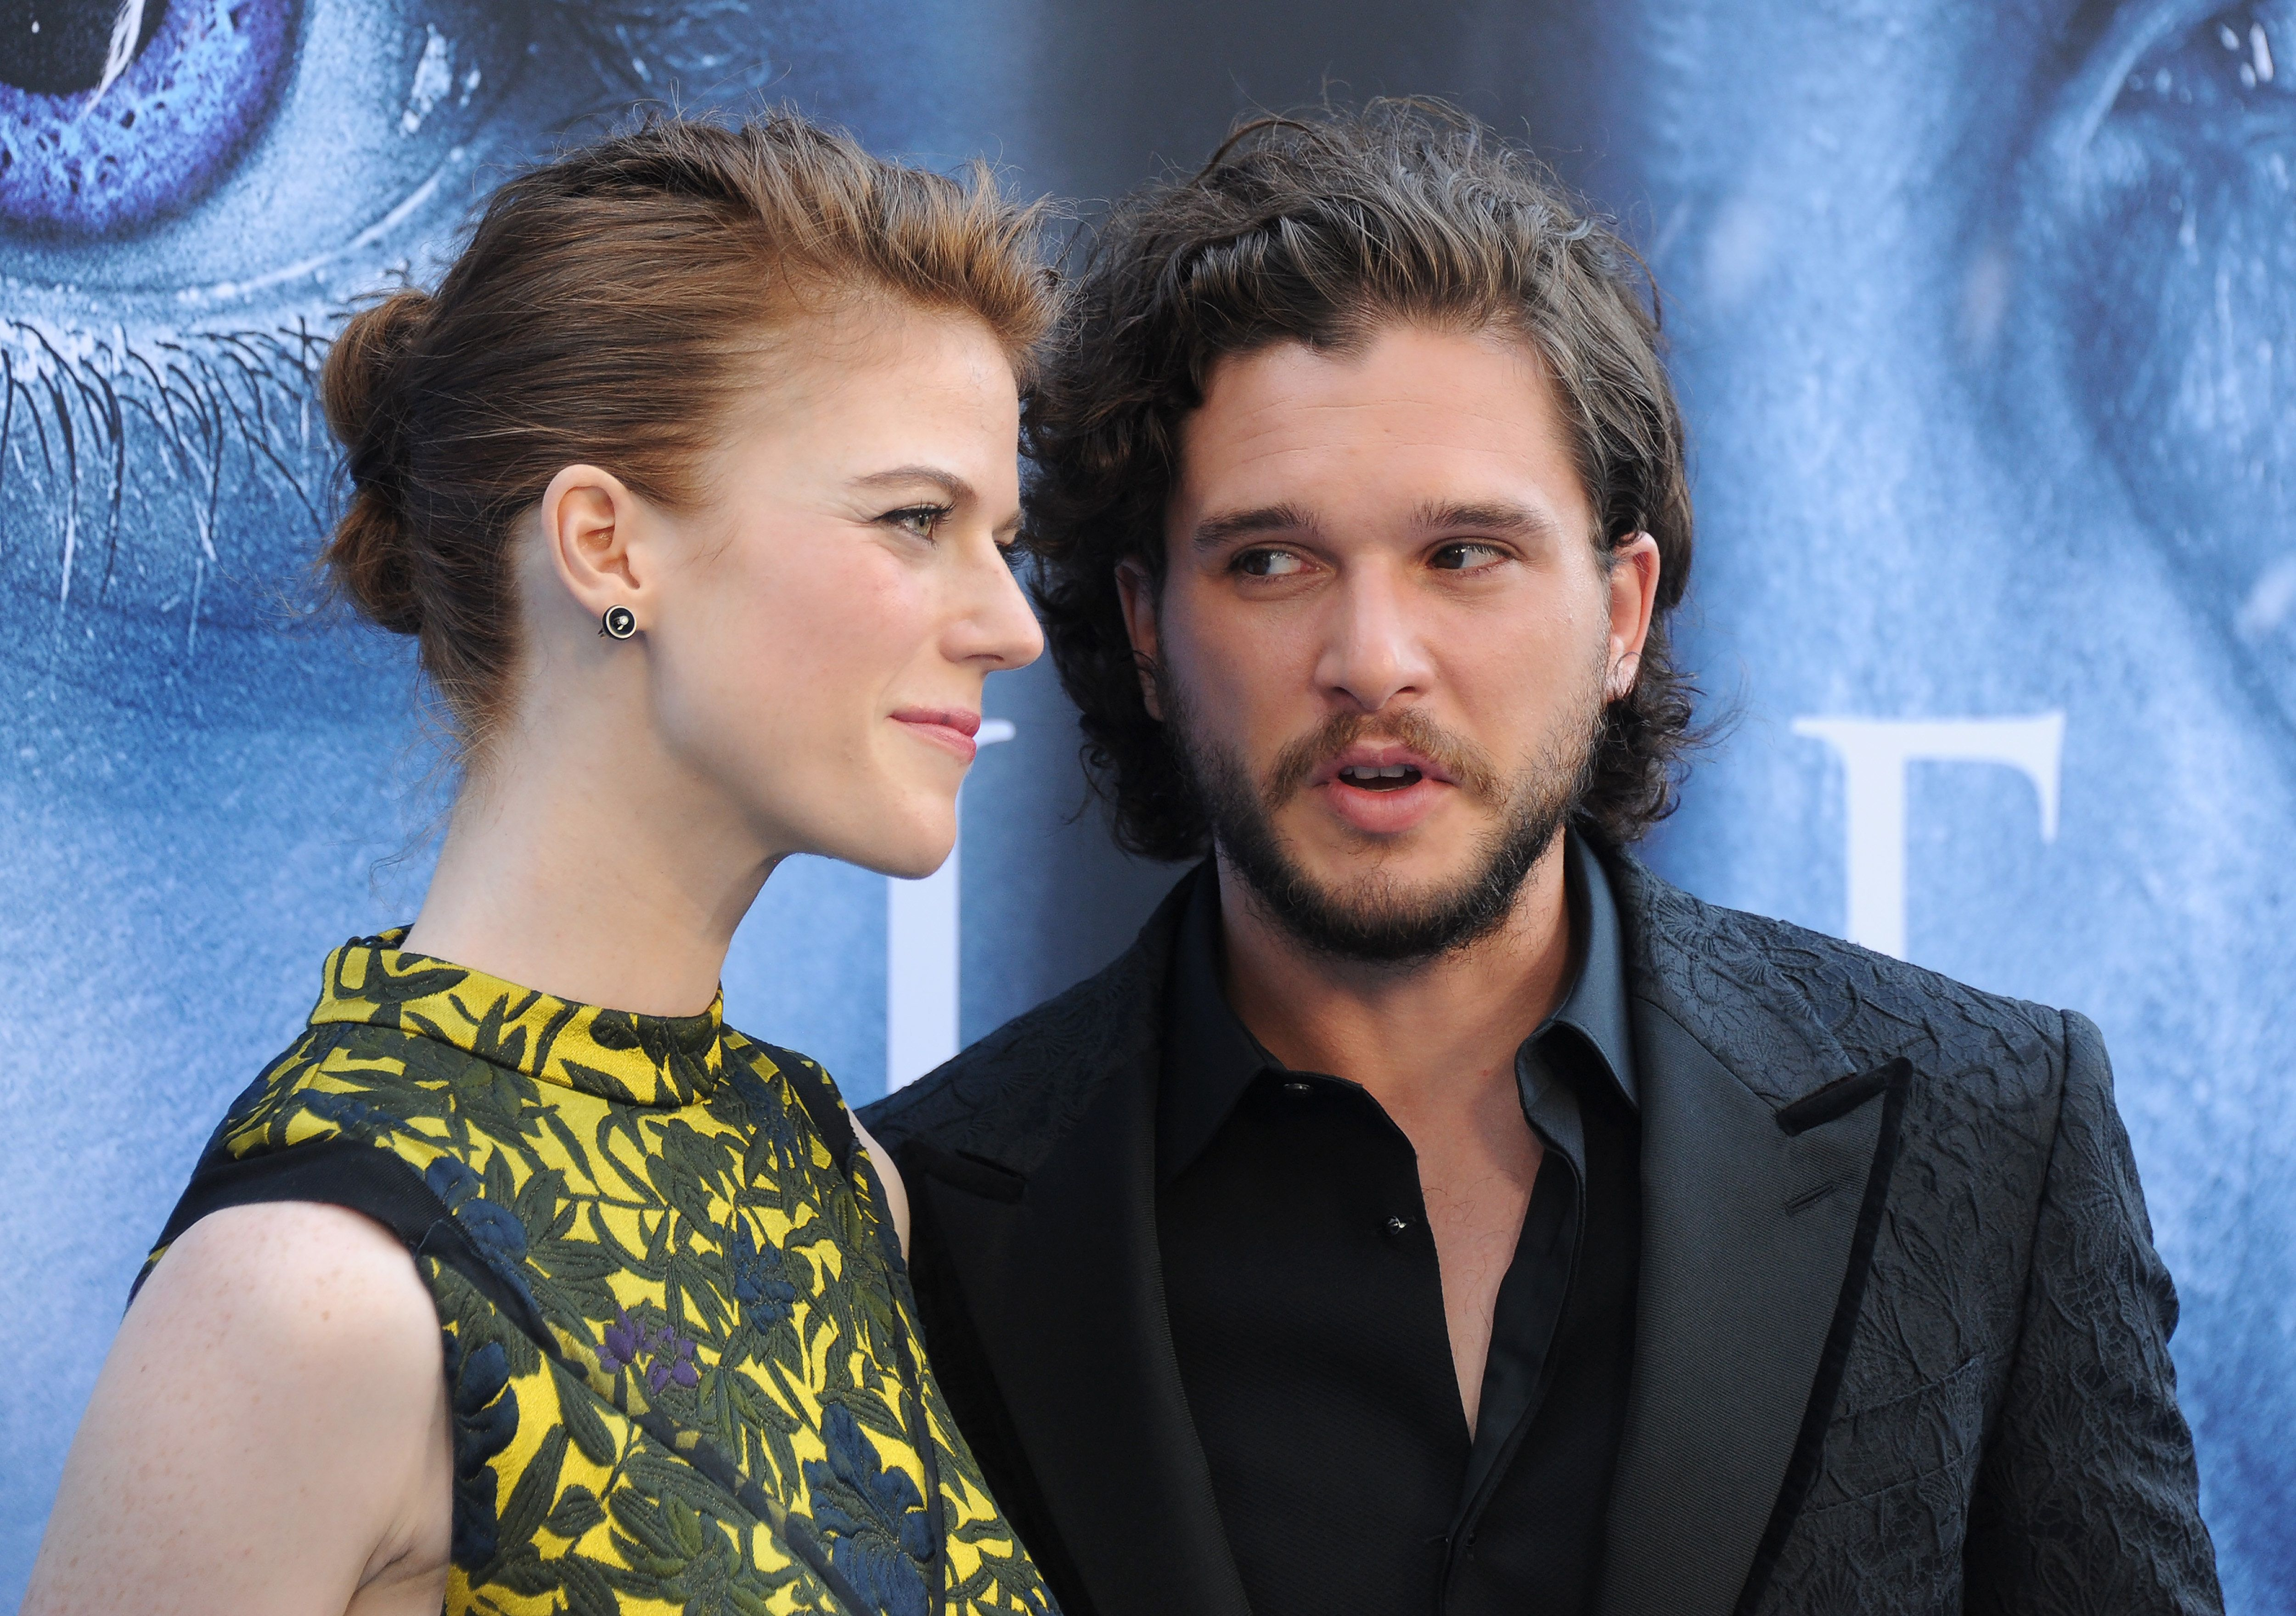 LOS ANGELES, CA - JULY 12:  Actors Kit Harington and Rose Leslie arrive at the premiere of HBO's 'Game Of Thrones' Season 7 at Walt Disney Concert Hall on July 12, 2017 in Los Angeles, California.  (Photo by Gregg DeGuire/WireImage)